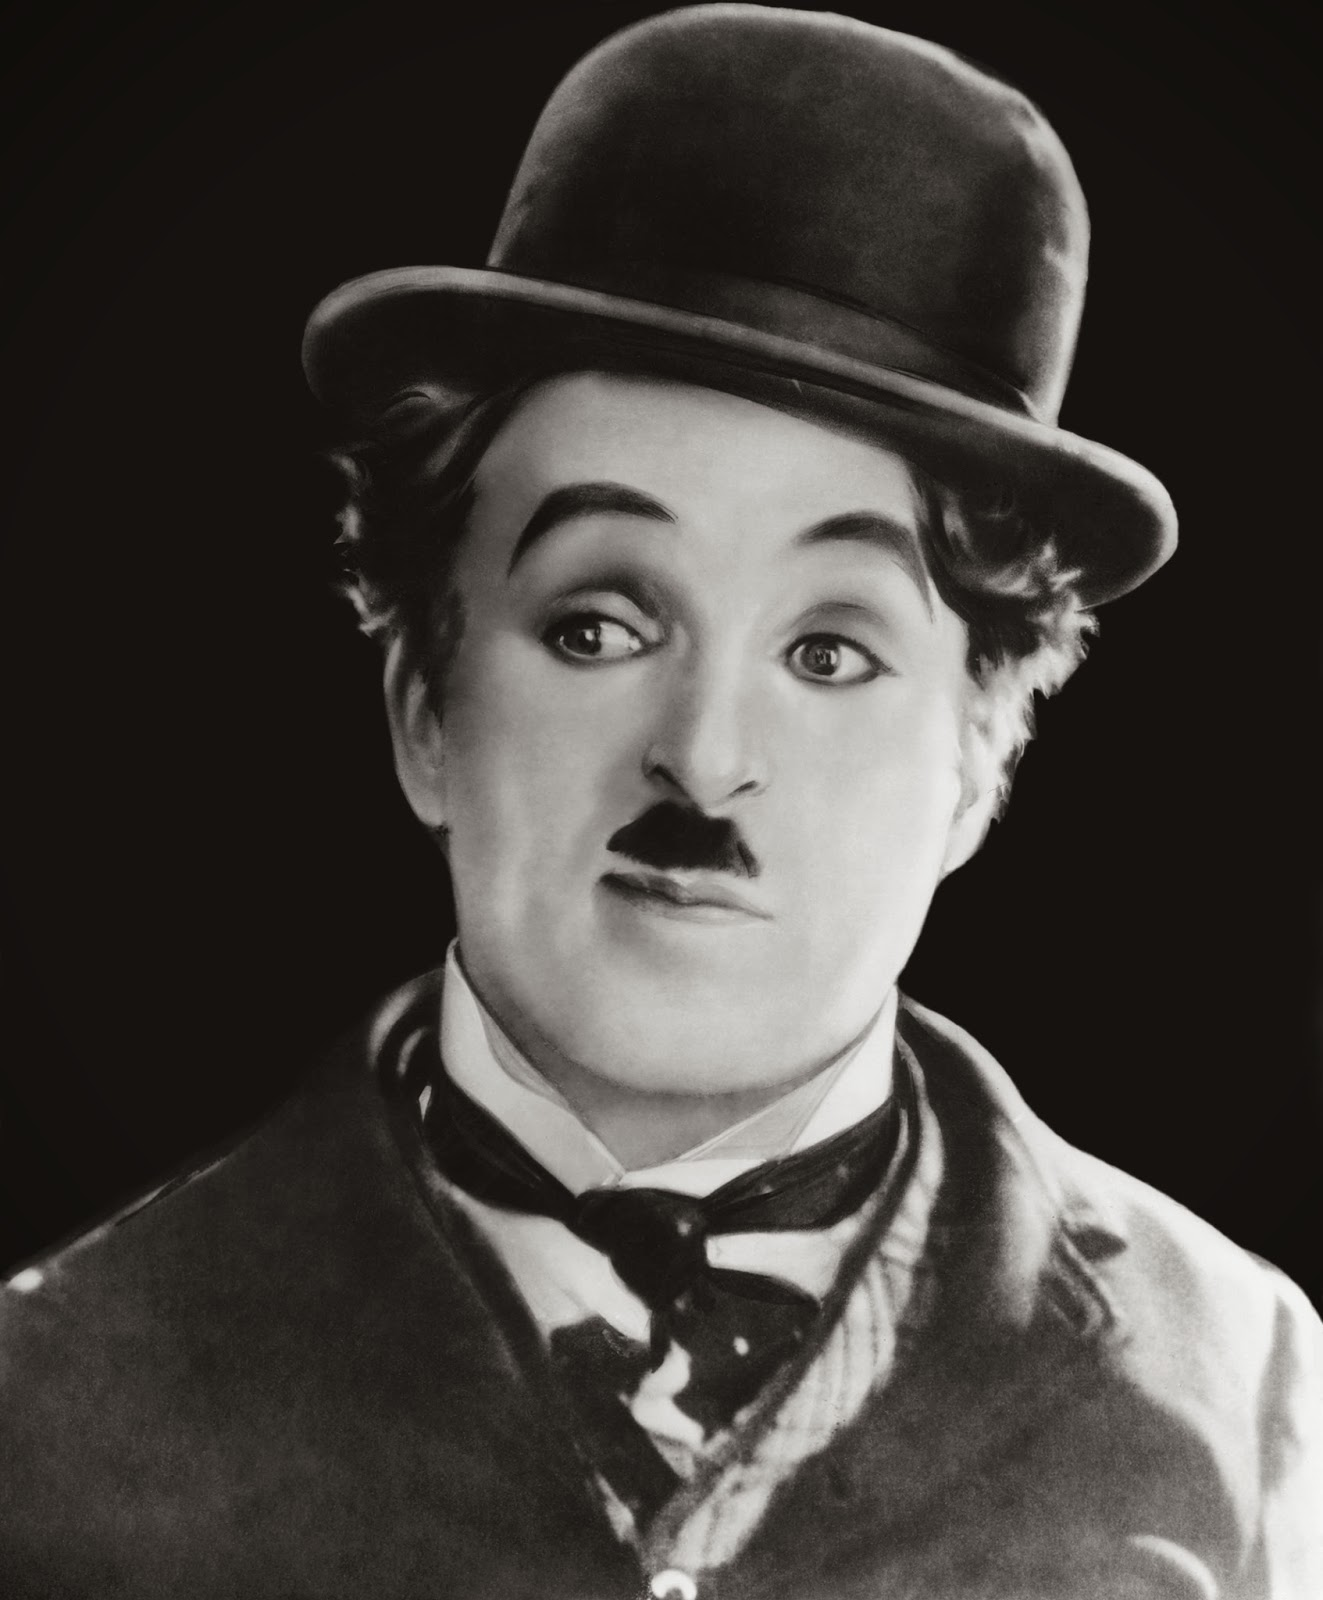 charlie-chaplin-early-films